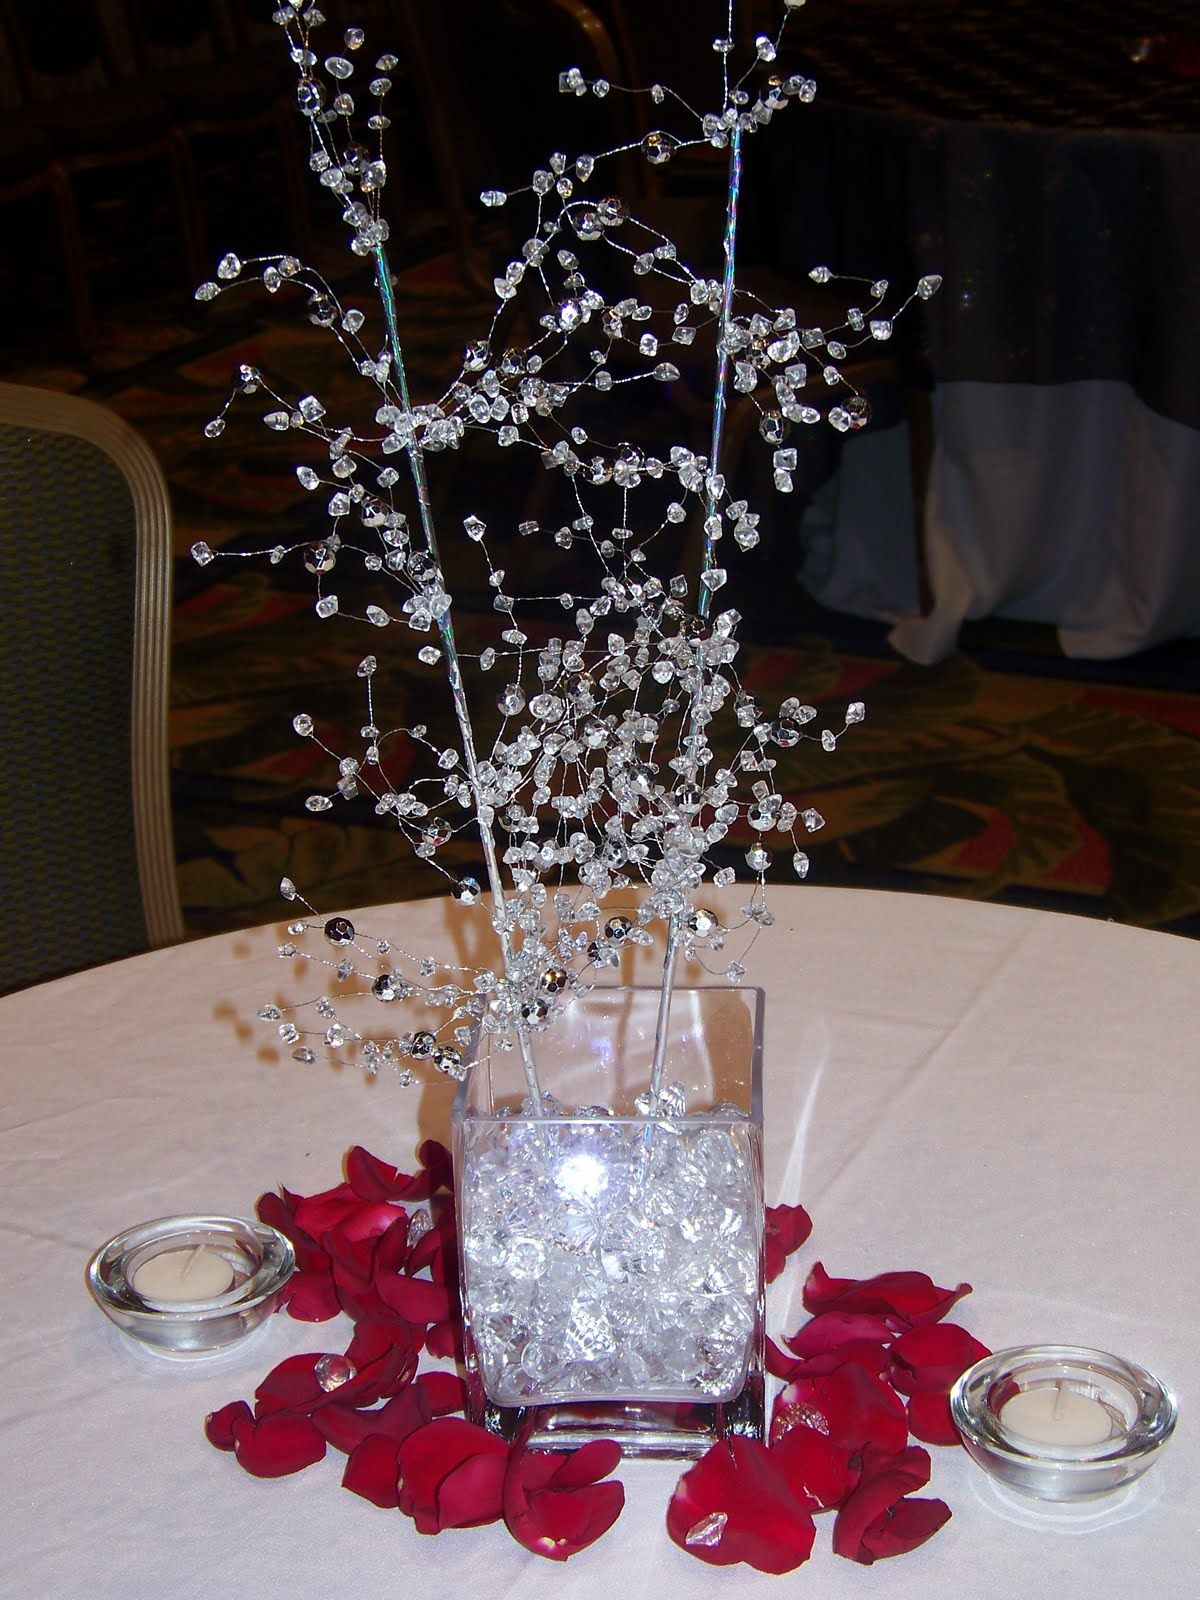 8a80da77b650ce Smaller crystal centerpiece with red rose petals pics of our beaded  centerpieces Crystal Ballroom Marriott World Cen.